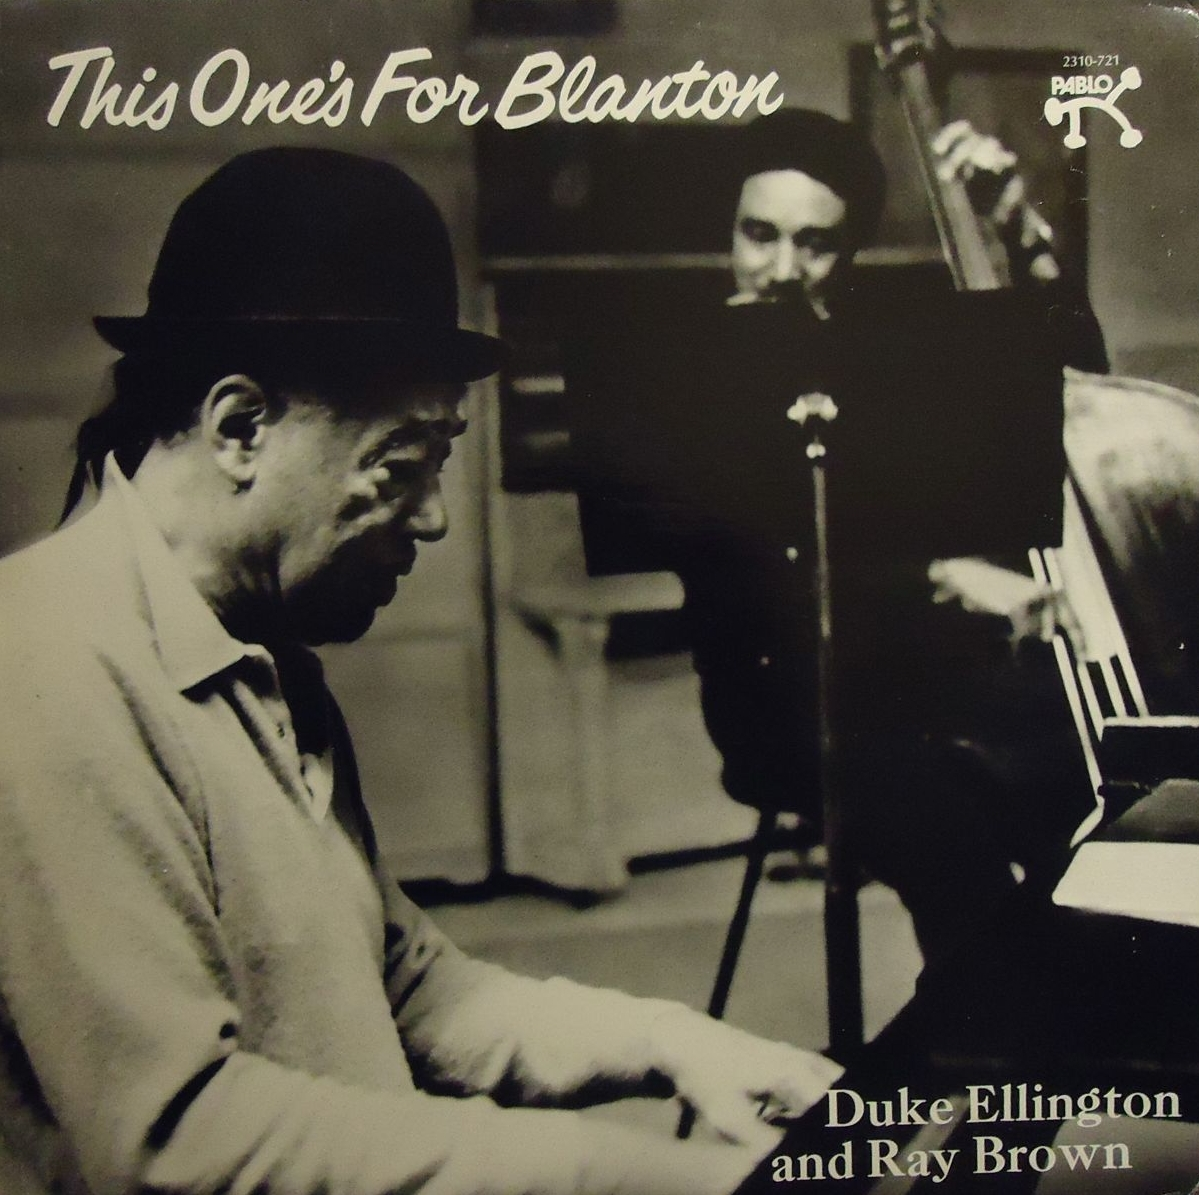 Duke Ellington &Ray Brown,  This One's For Blanton, released 1975/recorded 1973, Pablo Records